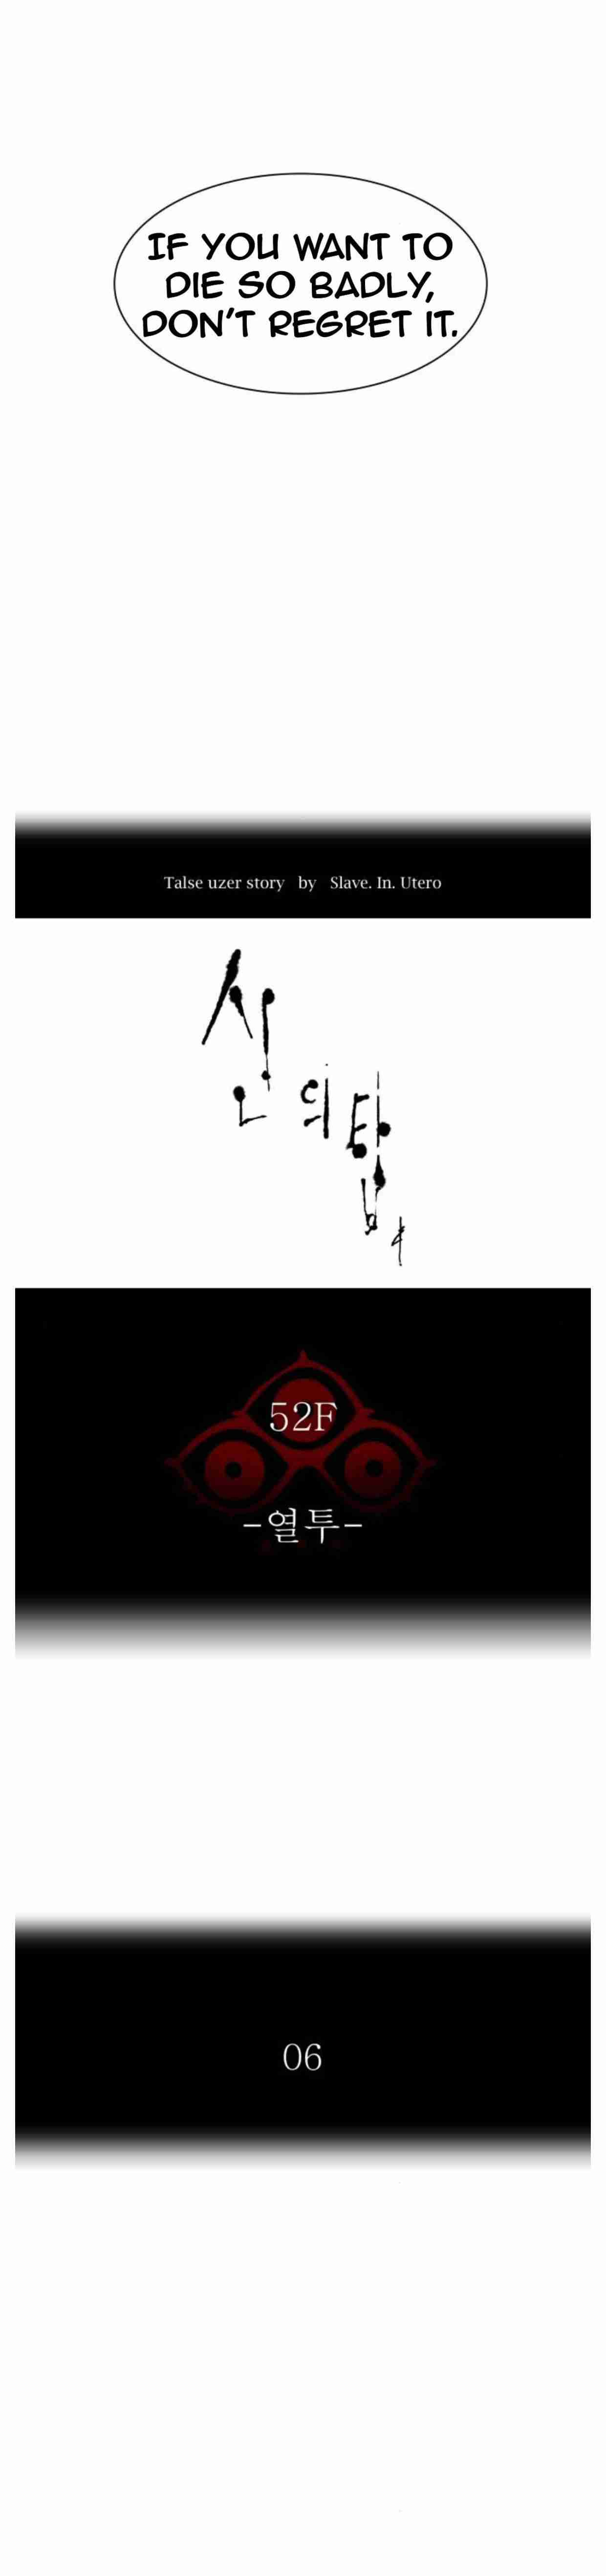 tower of god: Chapter 497 - Page 4